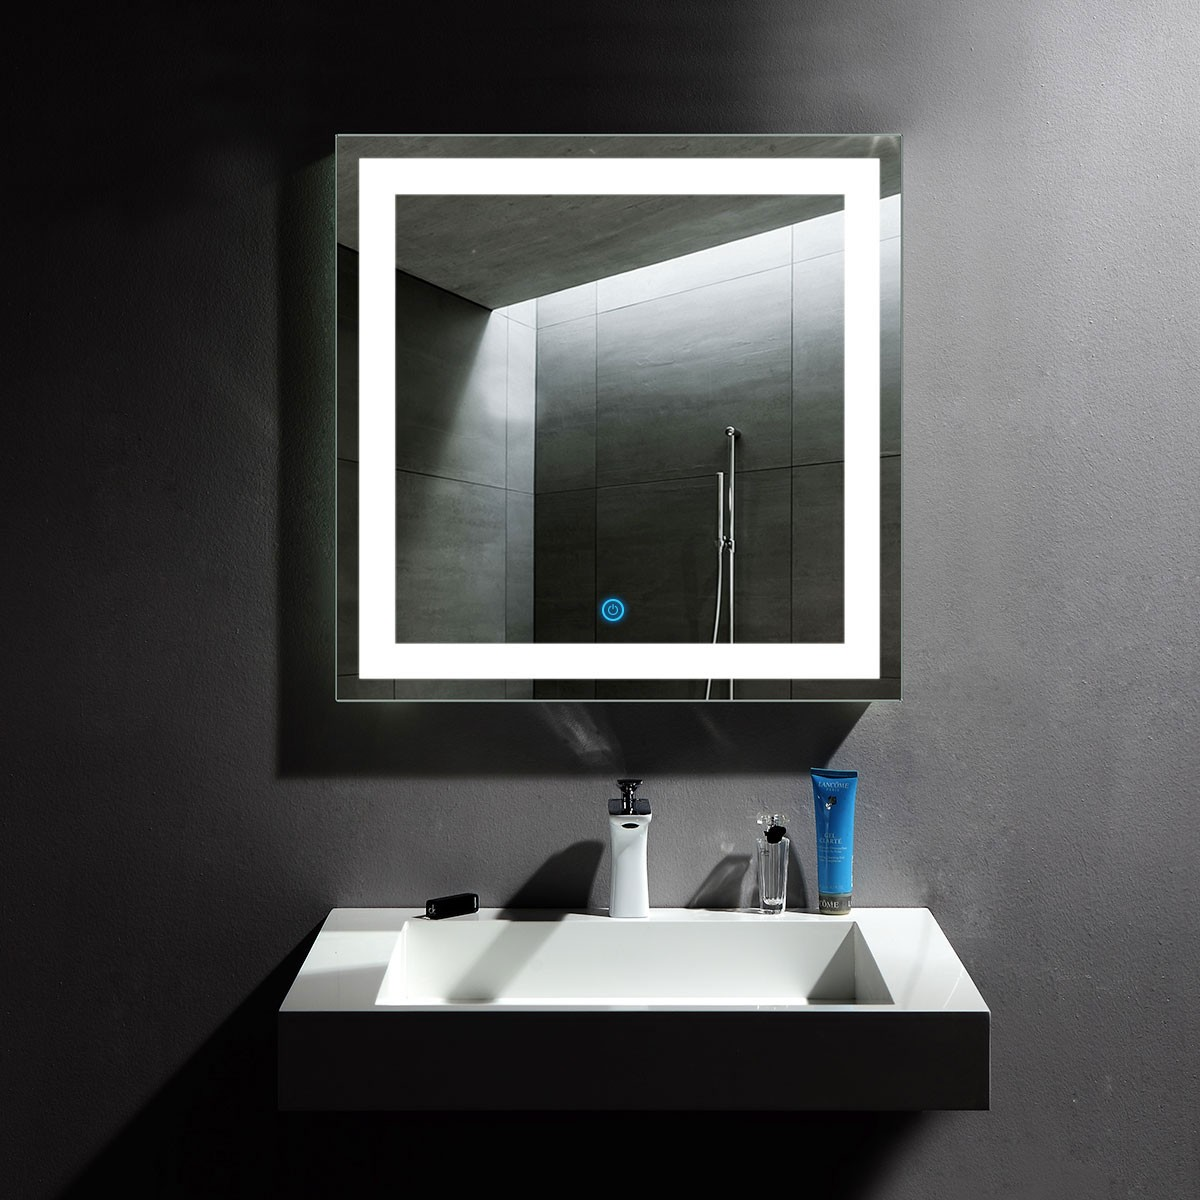 32 x 32 In and Vertical LED Bathroom Mirror with Touch Button (DK-OD-CK010-F)